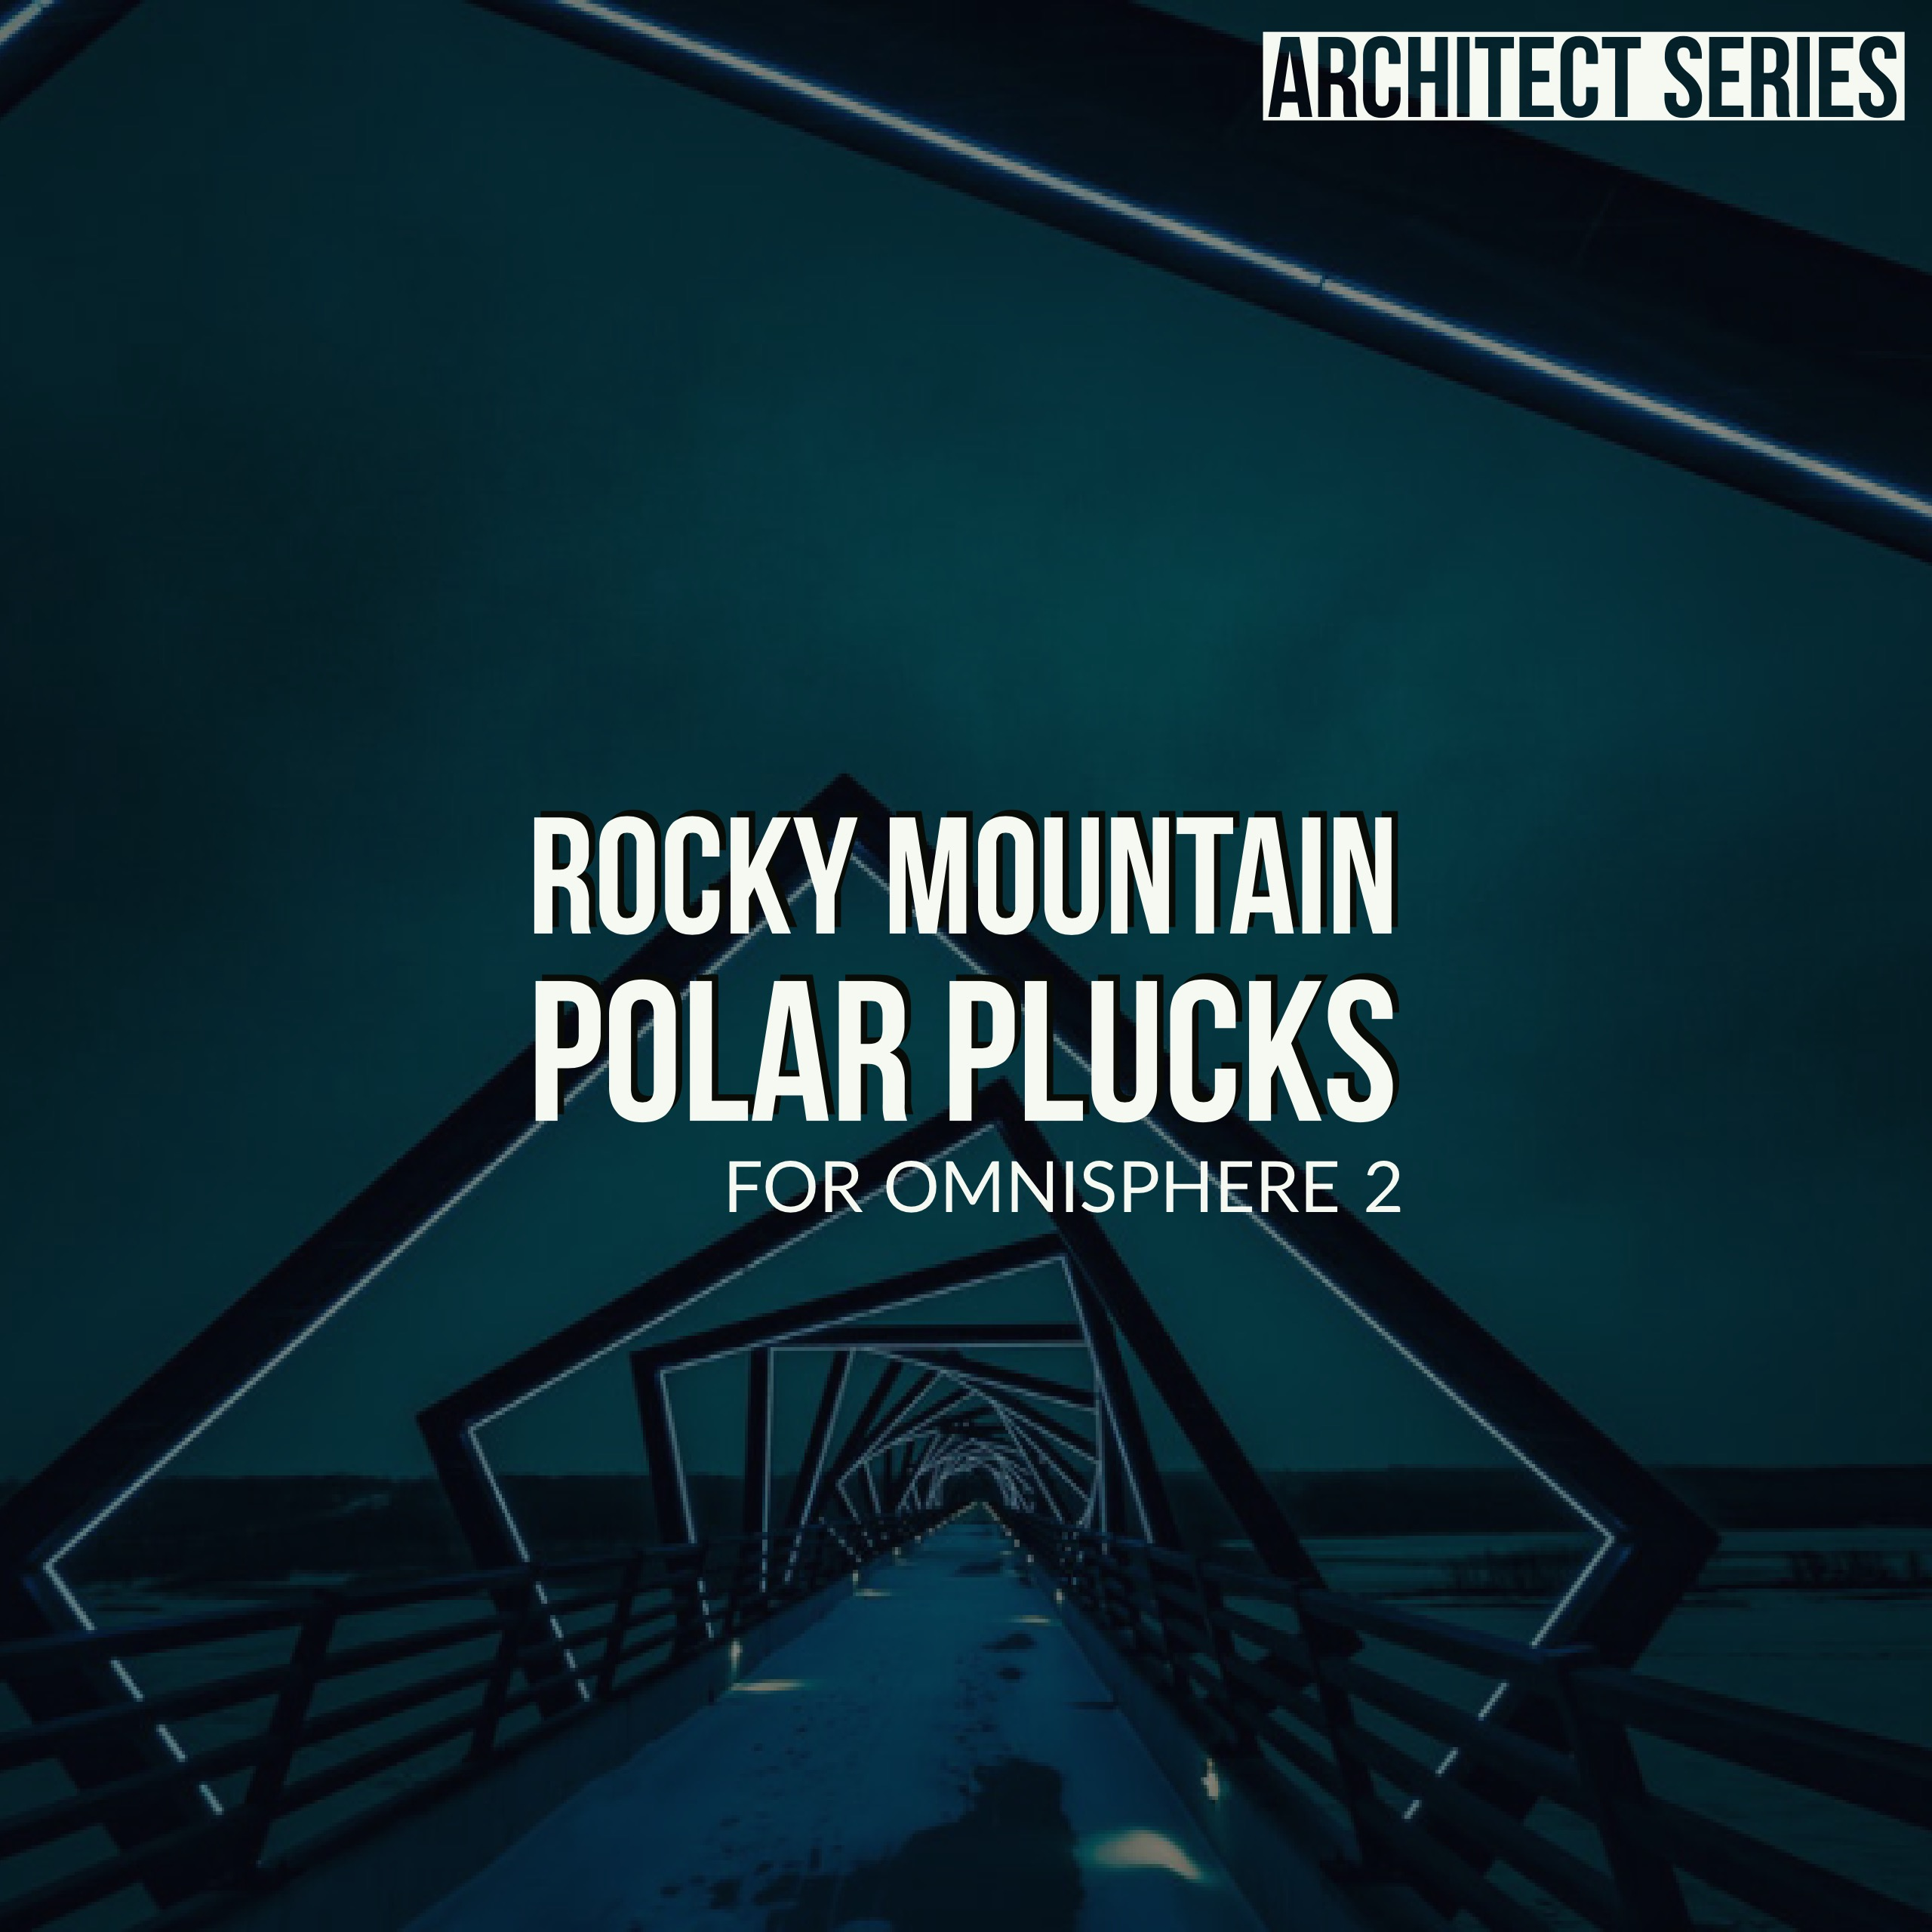 KVR: Polar Plucks for Omnisphere 2 by Rocky Mountain Sounds - Synth